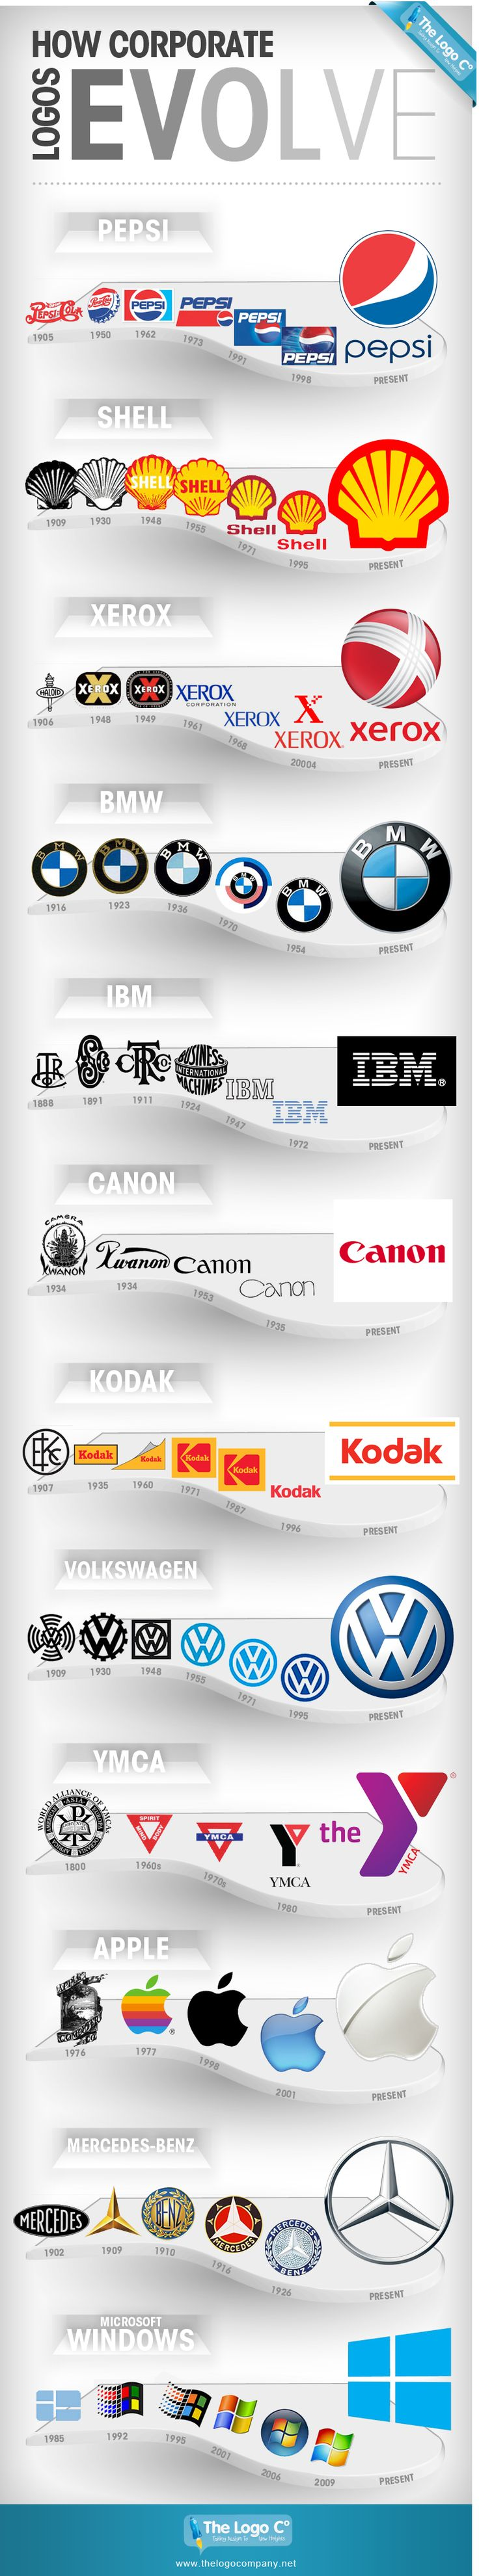 How Corporate Logos Evolve - What a great walk down memory lane. How many of these versions do you remember over the years? Sadly I am getting older ... as I remember quite a few of them!